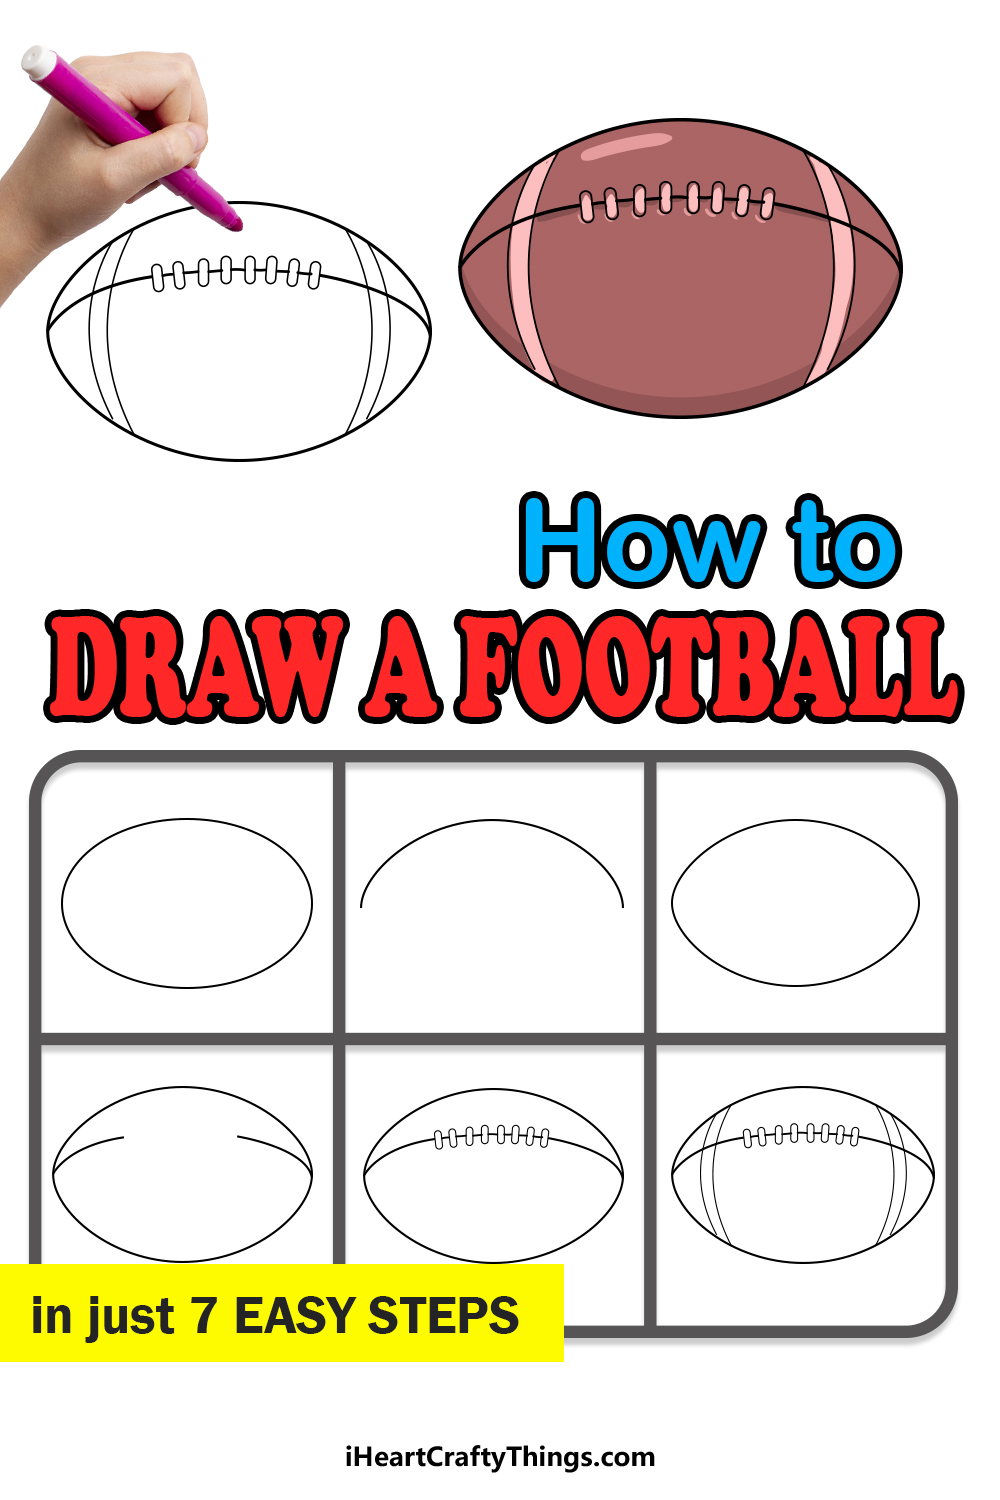 how to draw a football in 7 easy steps